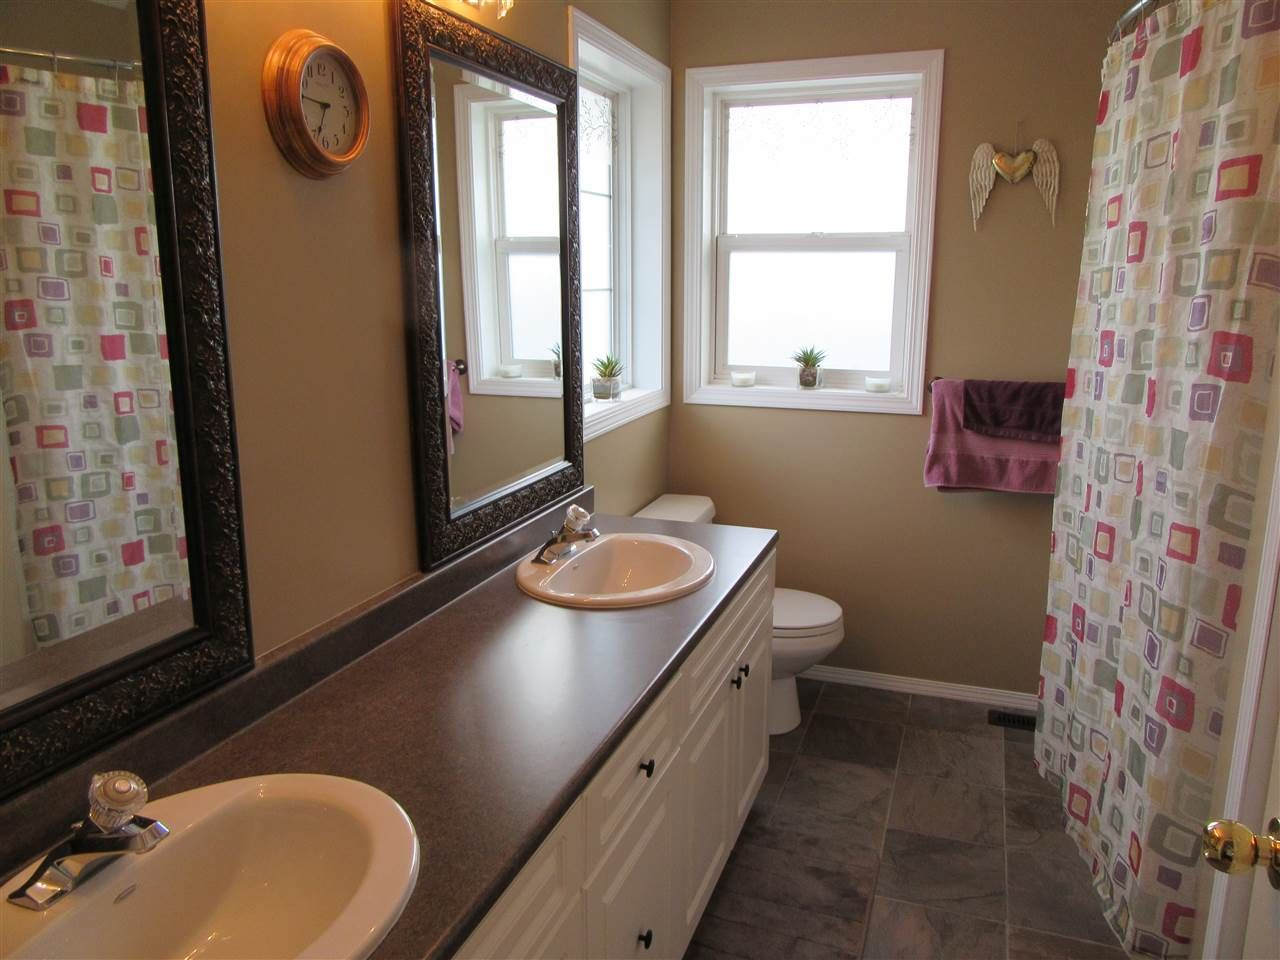 """Photo 24: Photos: 4305 FOSTER Road in Prince George: Charella/Starlane House for sale in """"CHARELLA/STARLANE"""" (PG City South (Zone 74))  : MLS®# R2499513"""